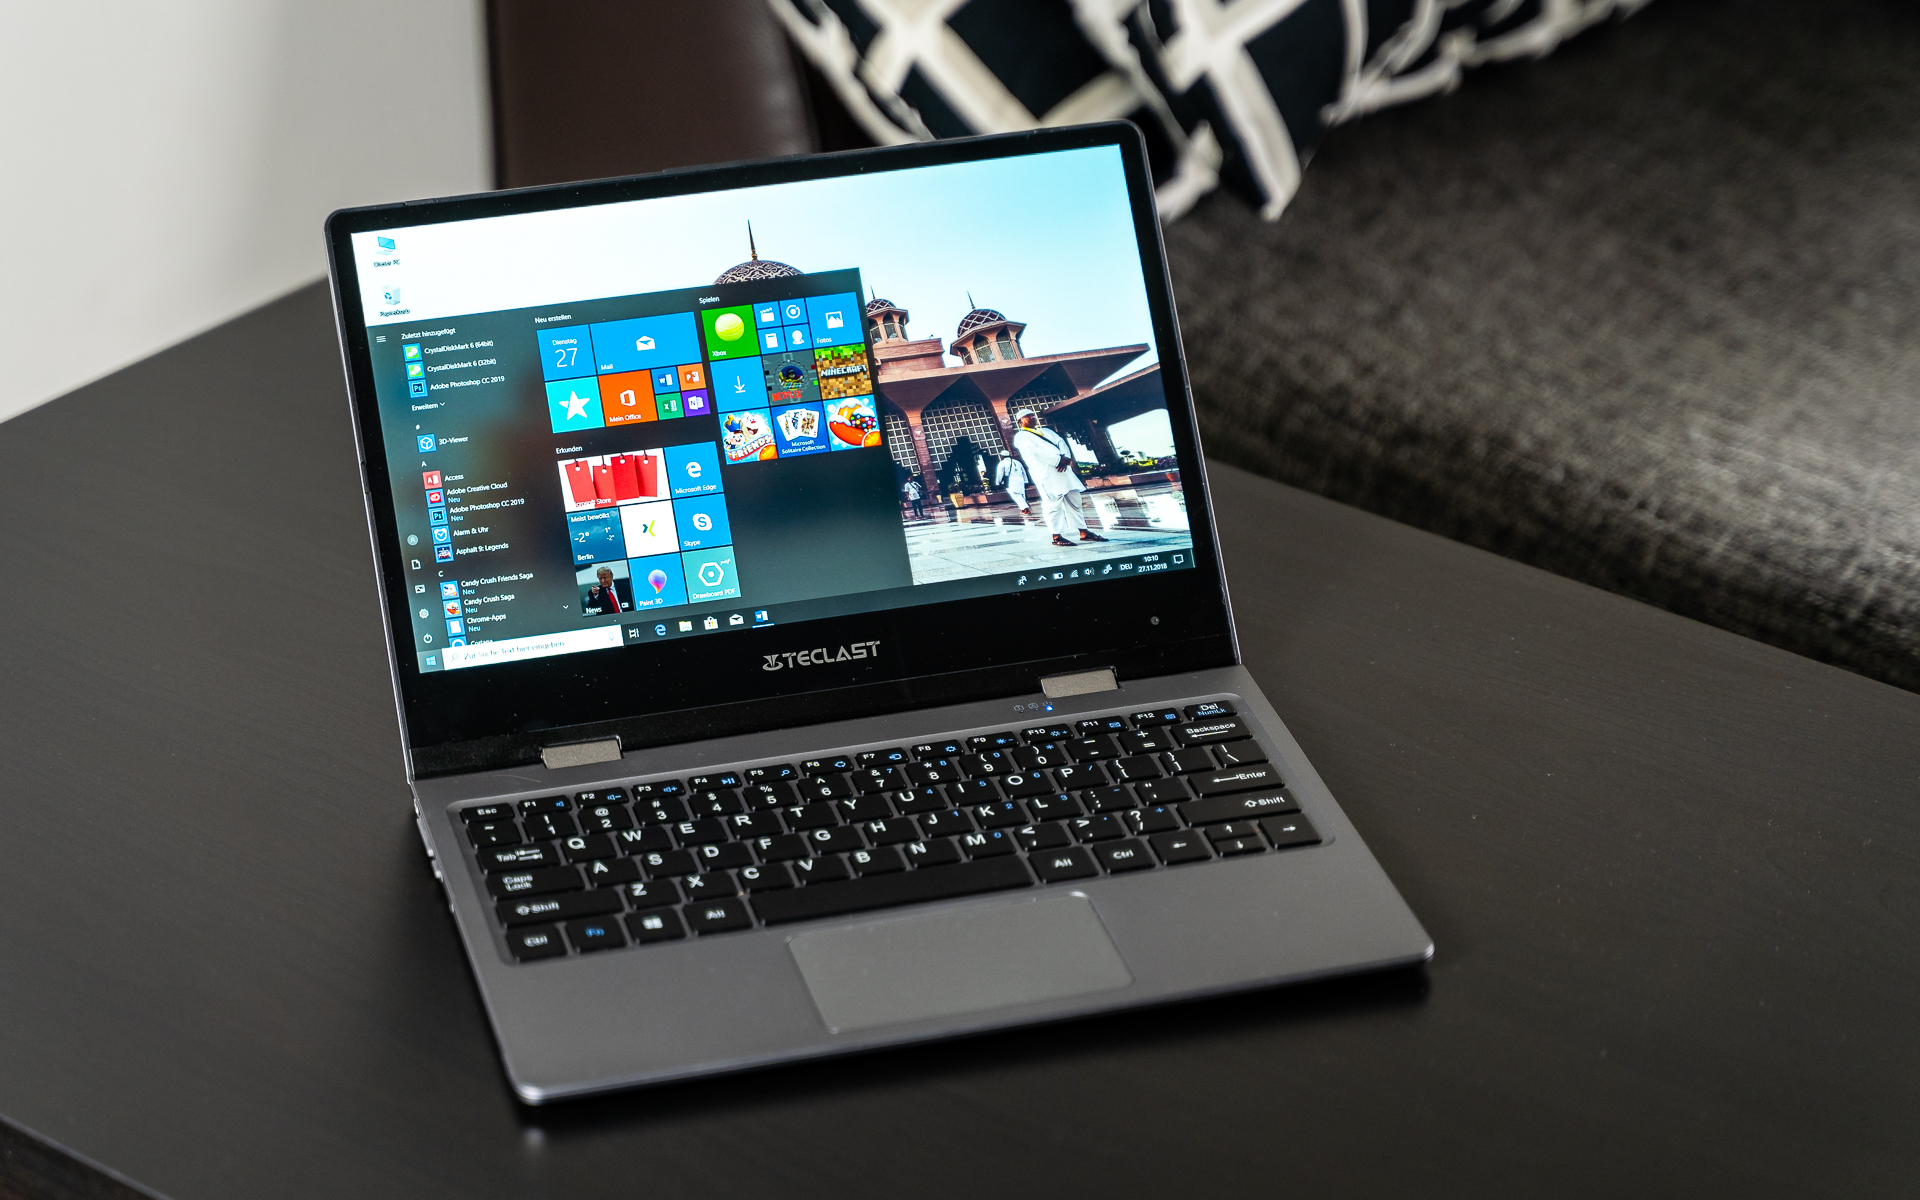 Teclast F5 Review